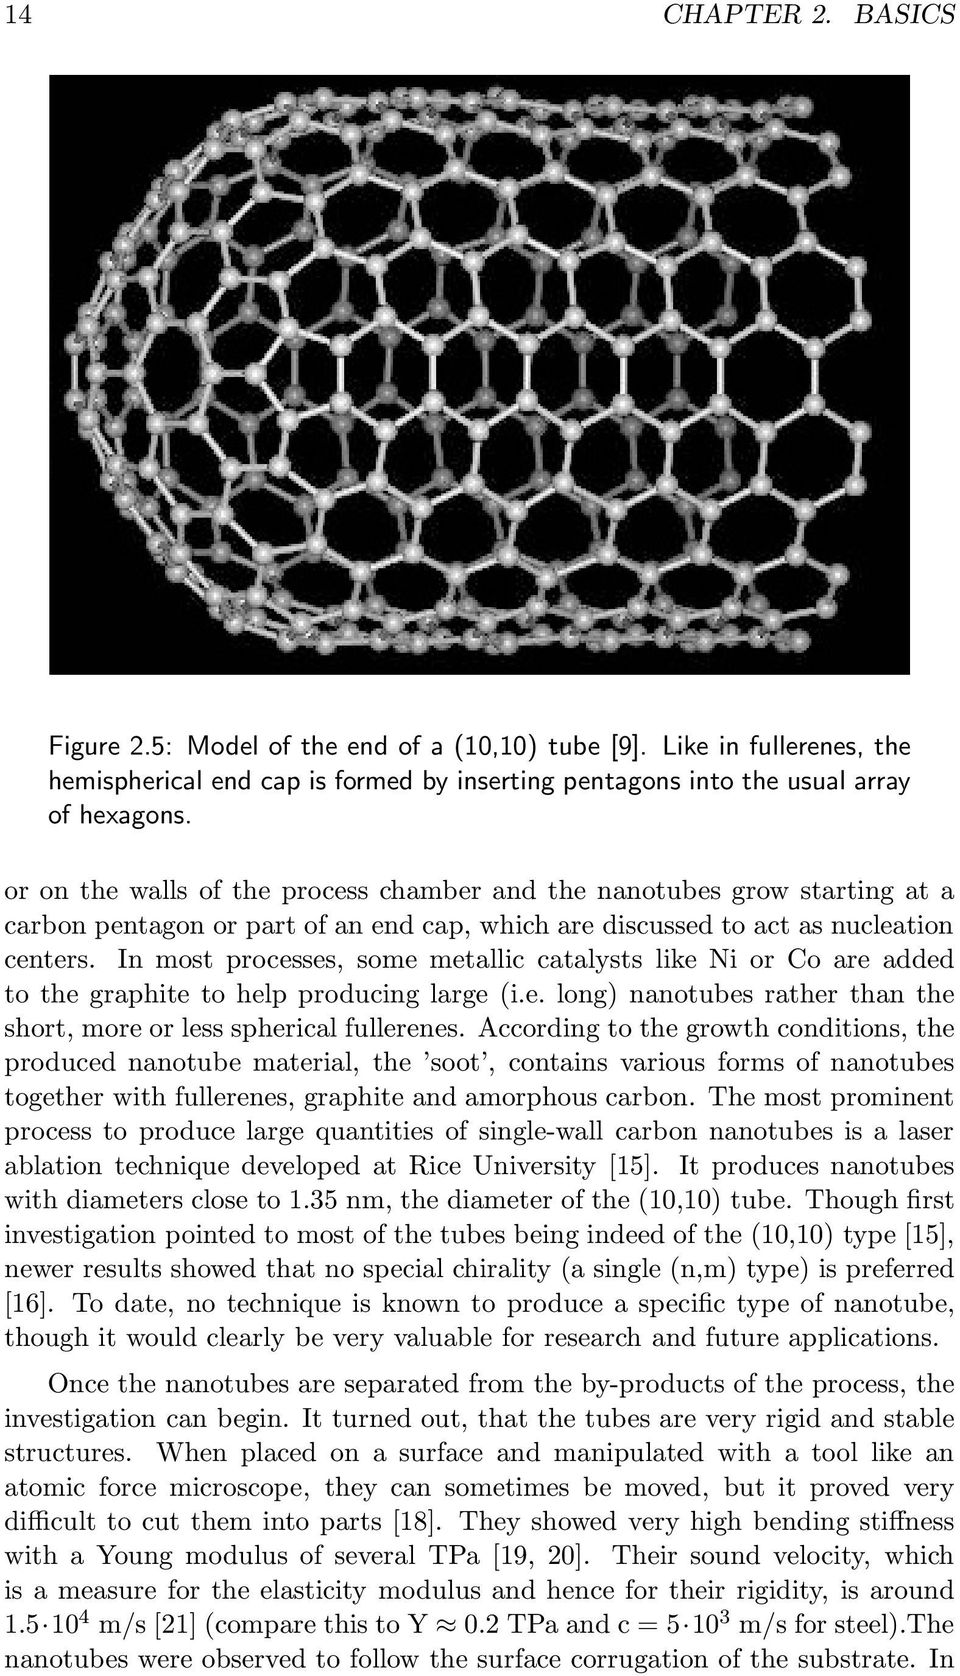 In most processes, some metallic catalysts like Ni or Co are added to the graphite to help producing large (i.e. long) nanotubes rather than the short, more or less spherical fullerenes.